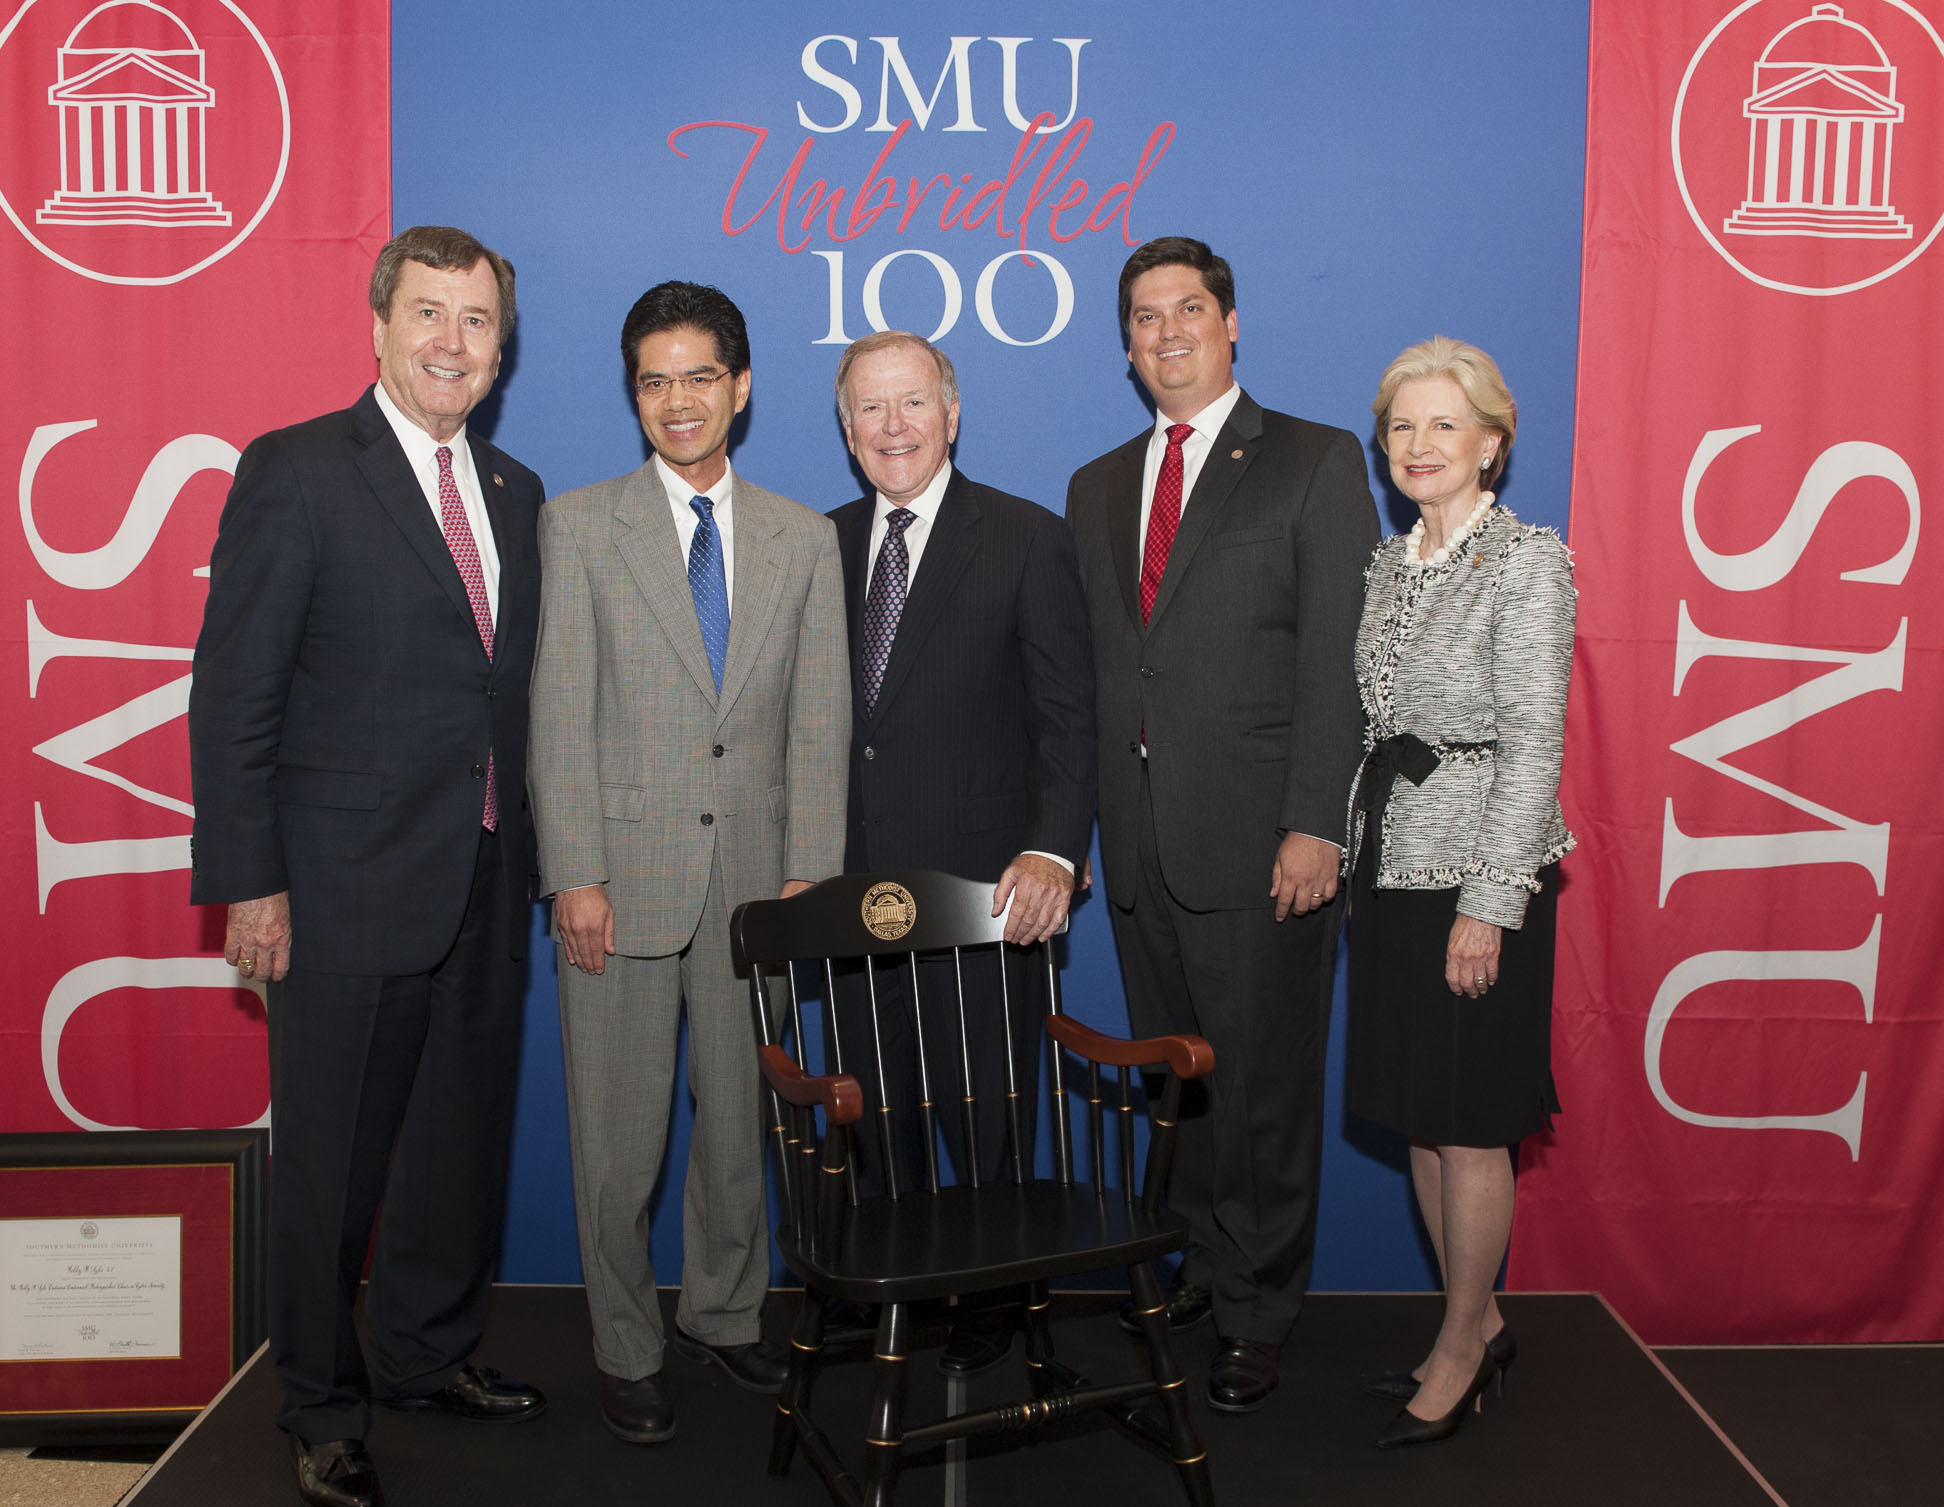 Fred Chang welcomed to SMU